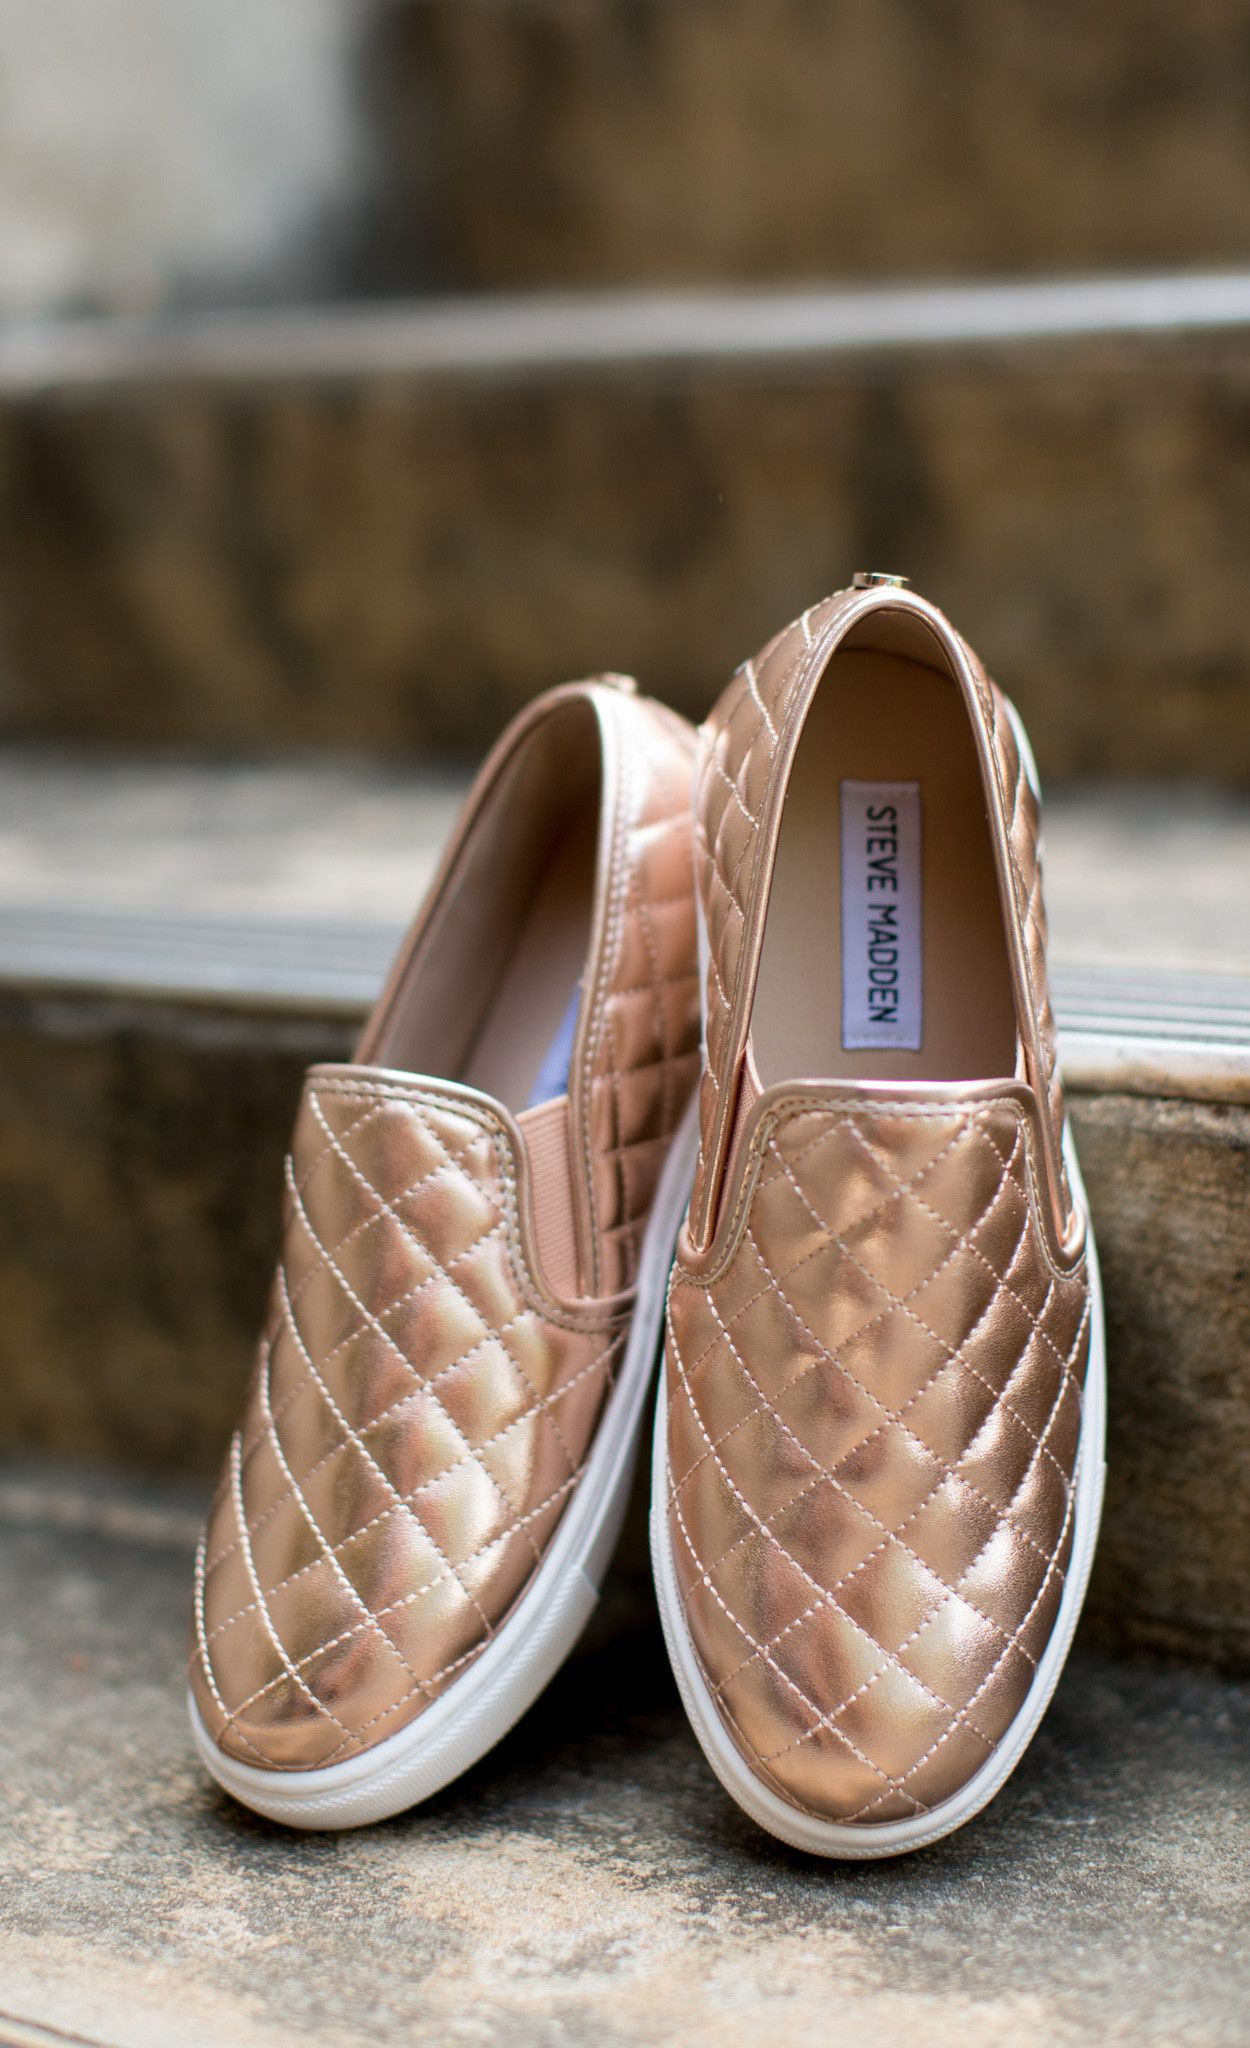 Steve Madden Pastel Rose Gold Espadrilles Casual Sneakers for sale very cheap outlet recommend clearance in China discount buy buy cheap deals arAZGP